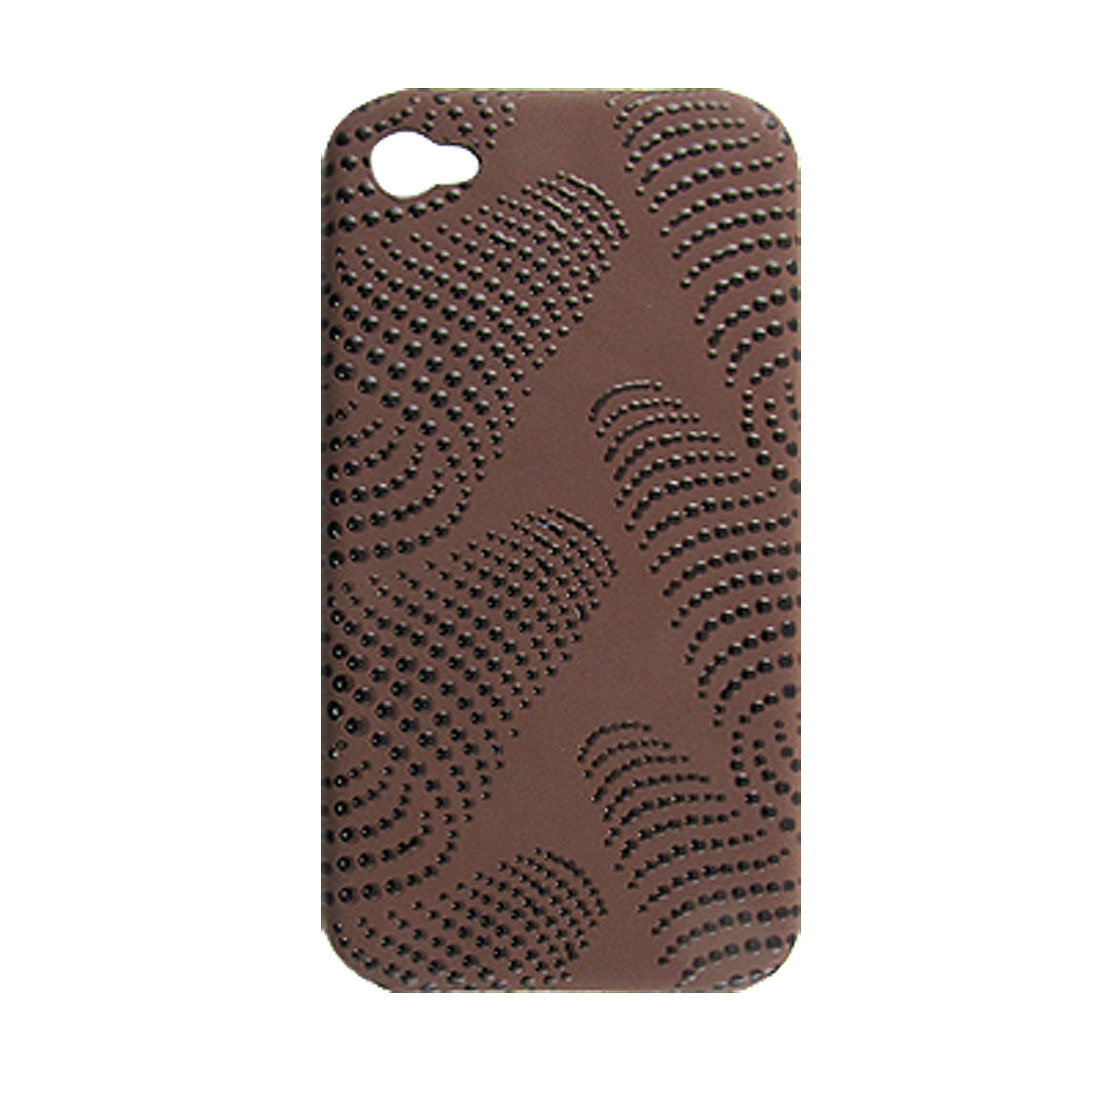 Nonslip Dot Hard Plastic Back Cover Coffee for iPhone 4 4G